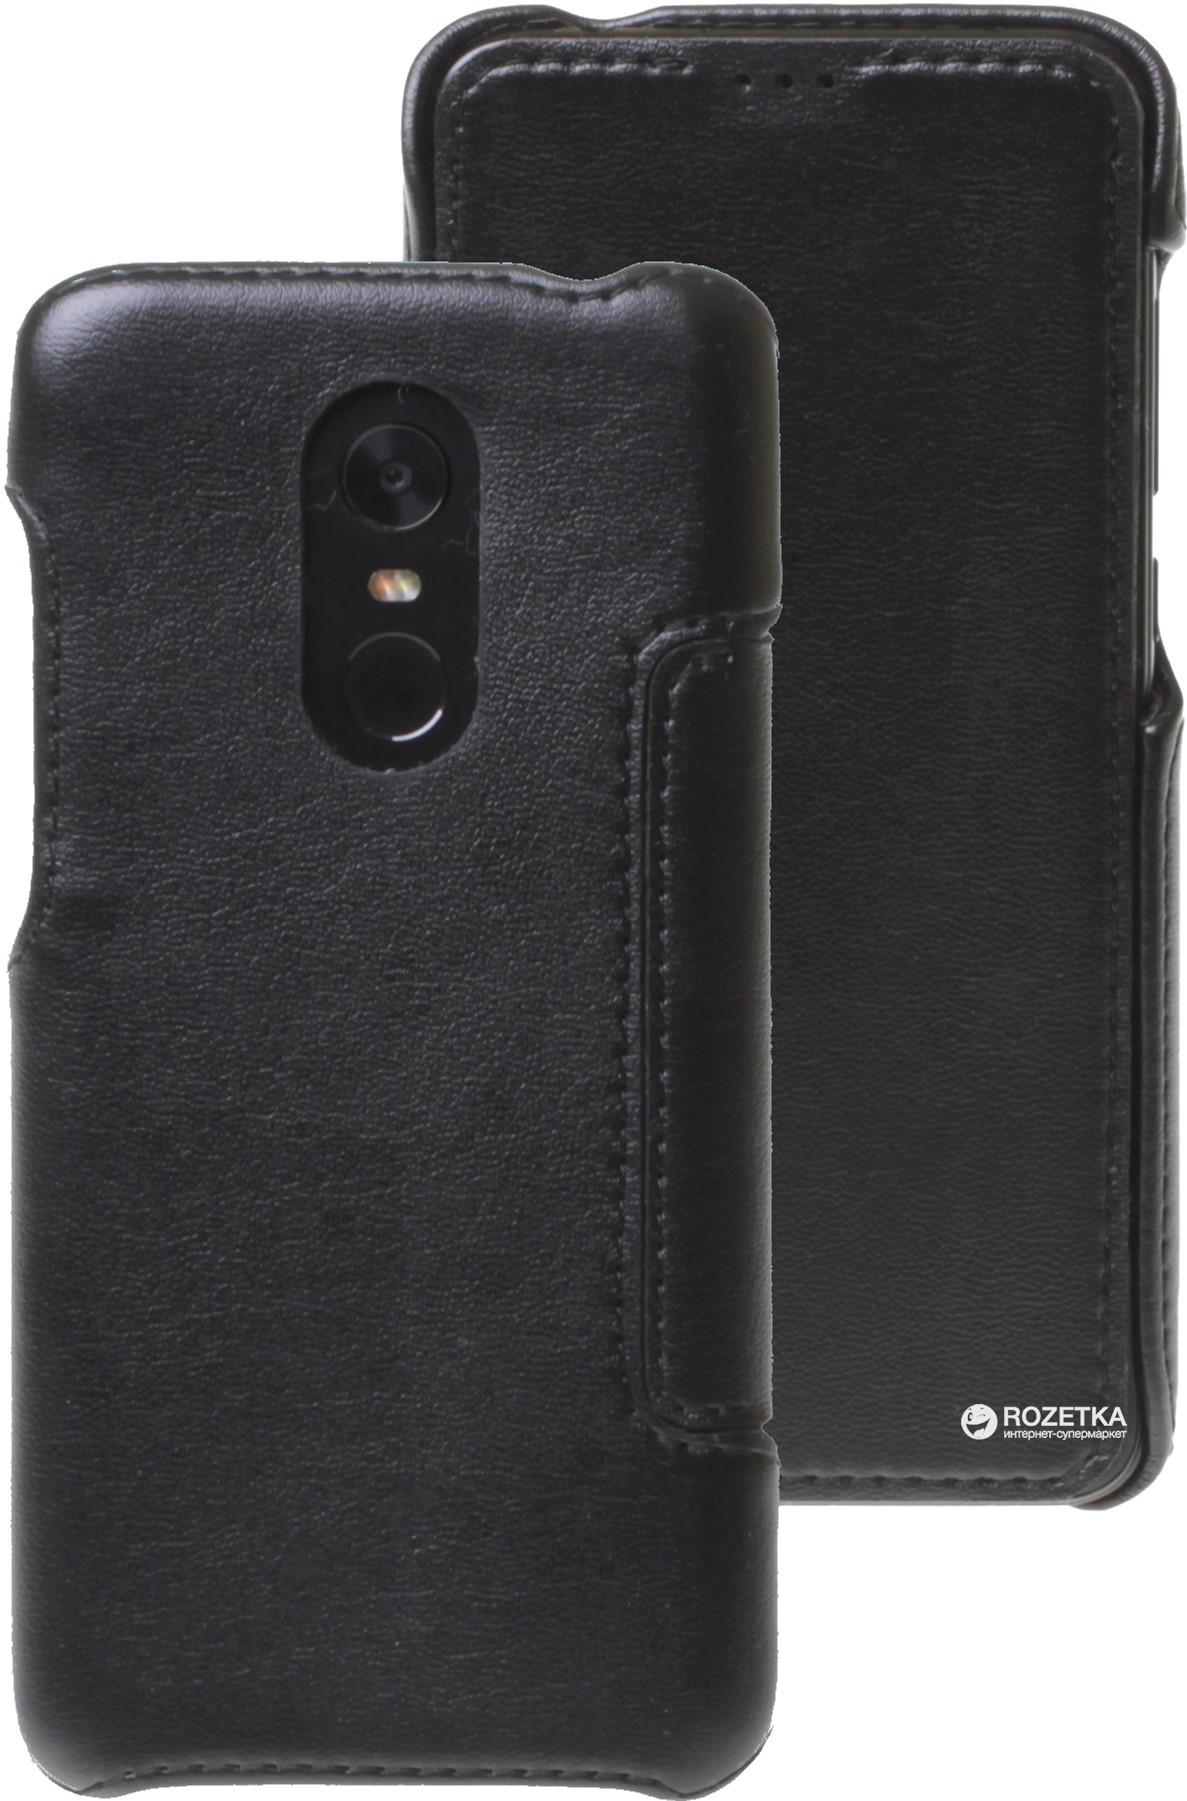 be744829d202 Rozetka.ua   Чехол-книжка RedPoint Fit Book для Xiaomi Redmi 5 Plus ...